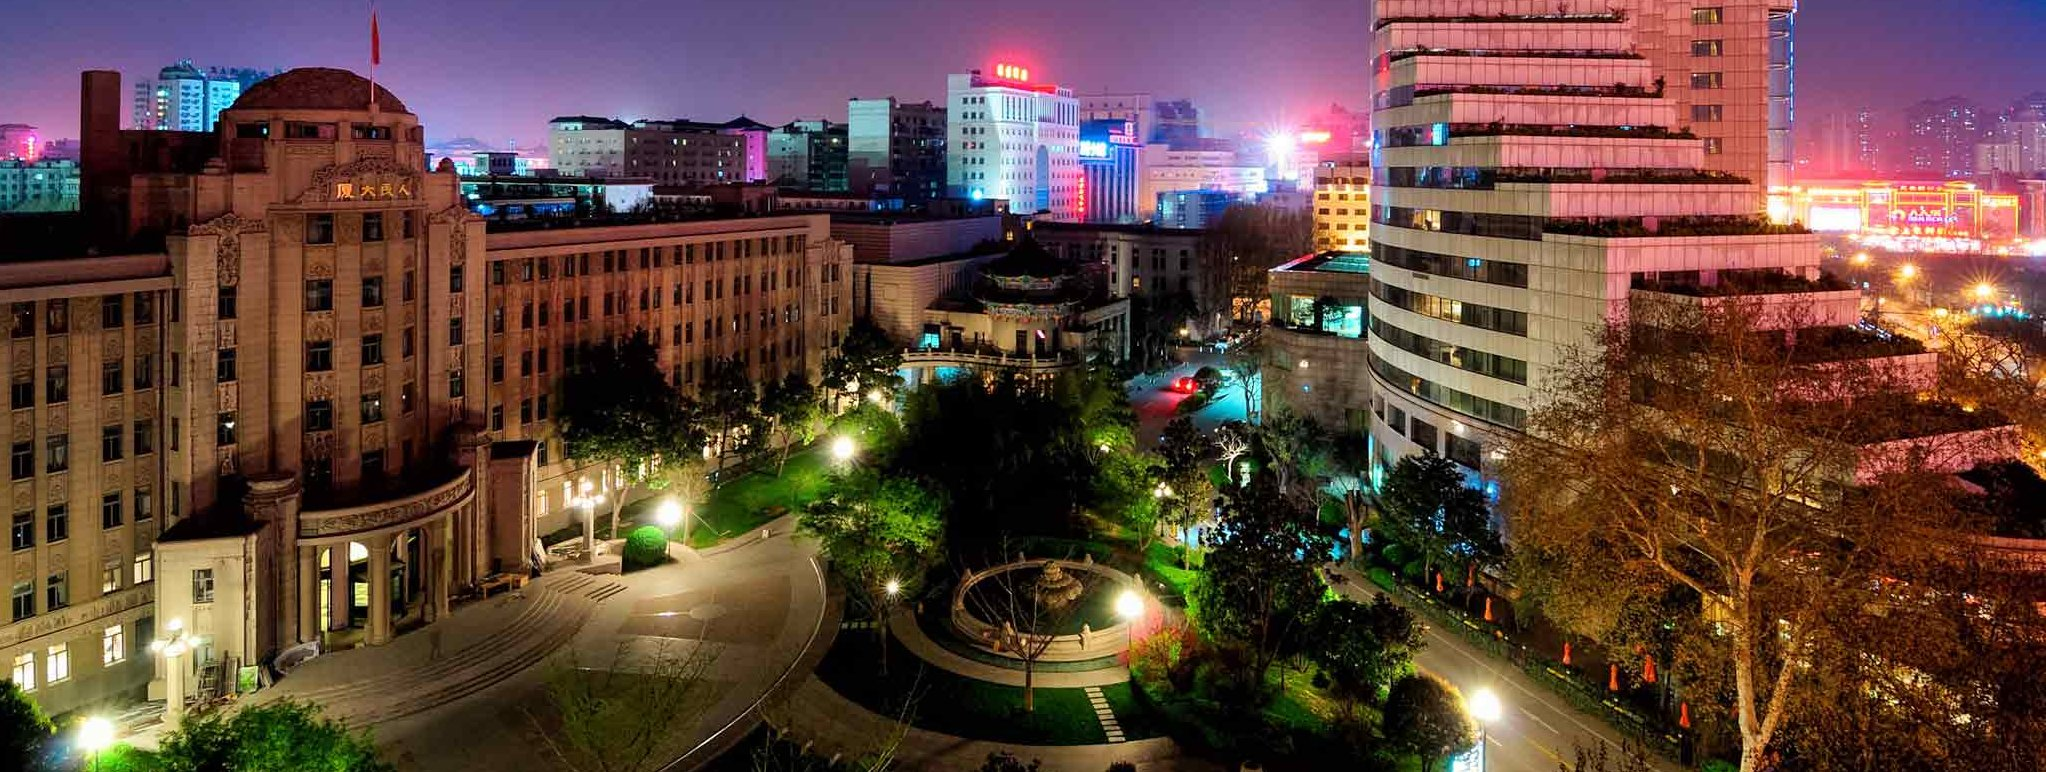 xian-city-night-view